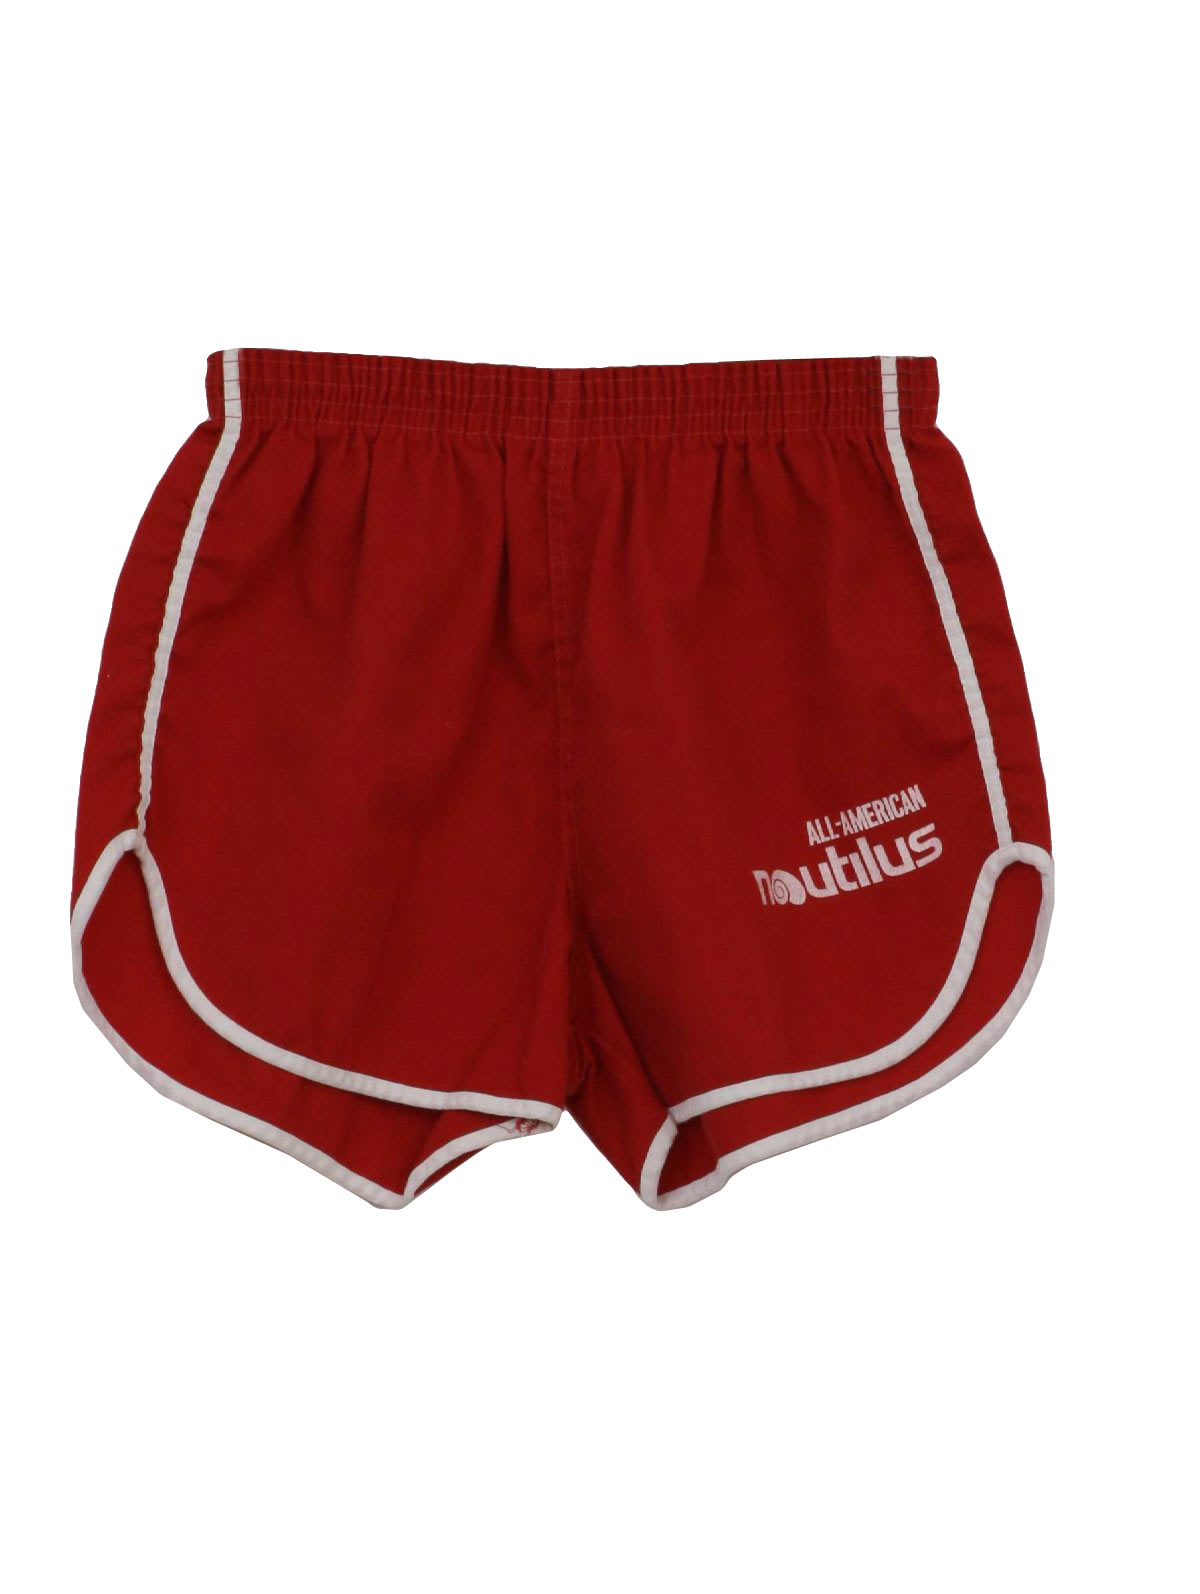 Vintage 1980's Shorts: 80s -Gym Shorts- Mens red and white ...